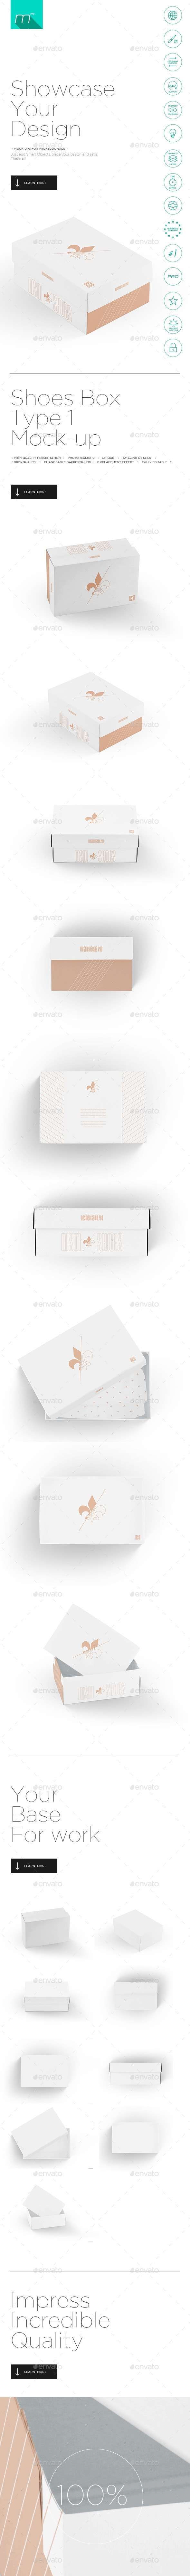 Shoes Box Type 1 Mock-up - Product Mock-Ups Graphics